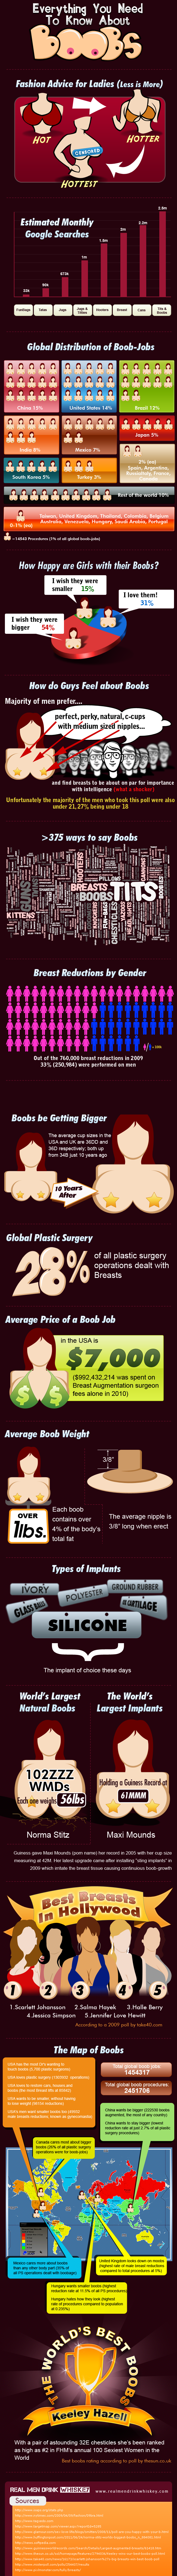 boobs infographic, breasts infographic, all about boobs, breast jobs infographic